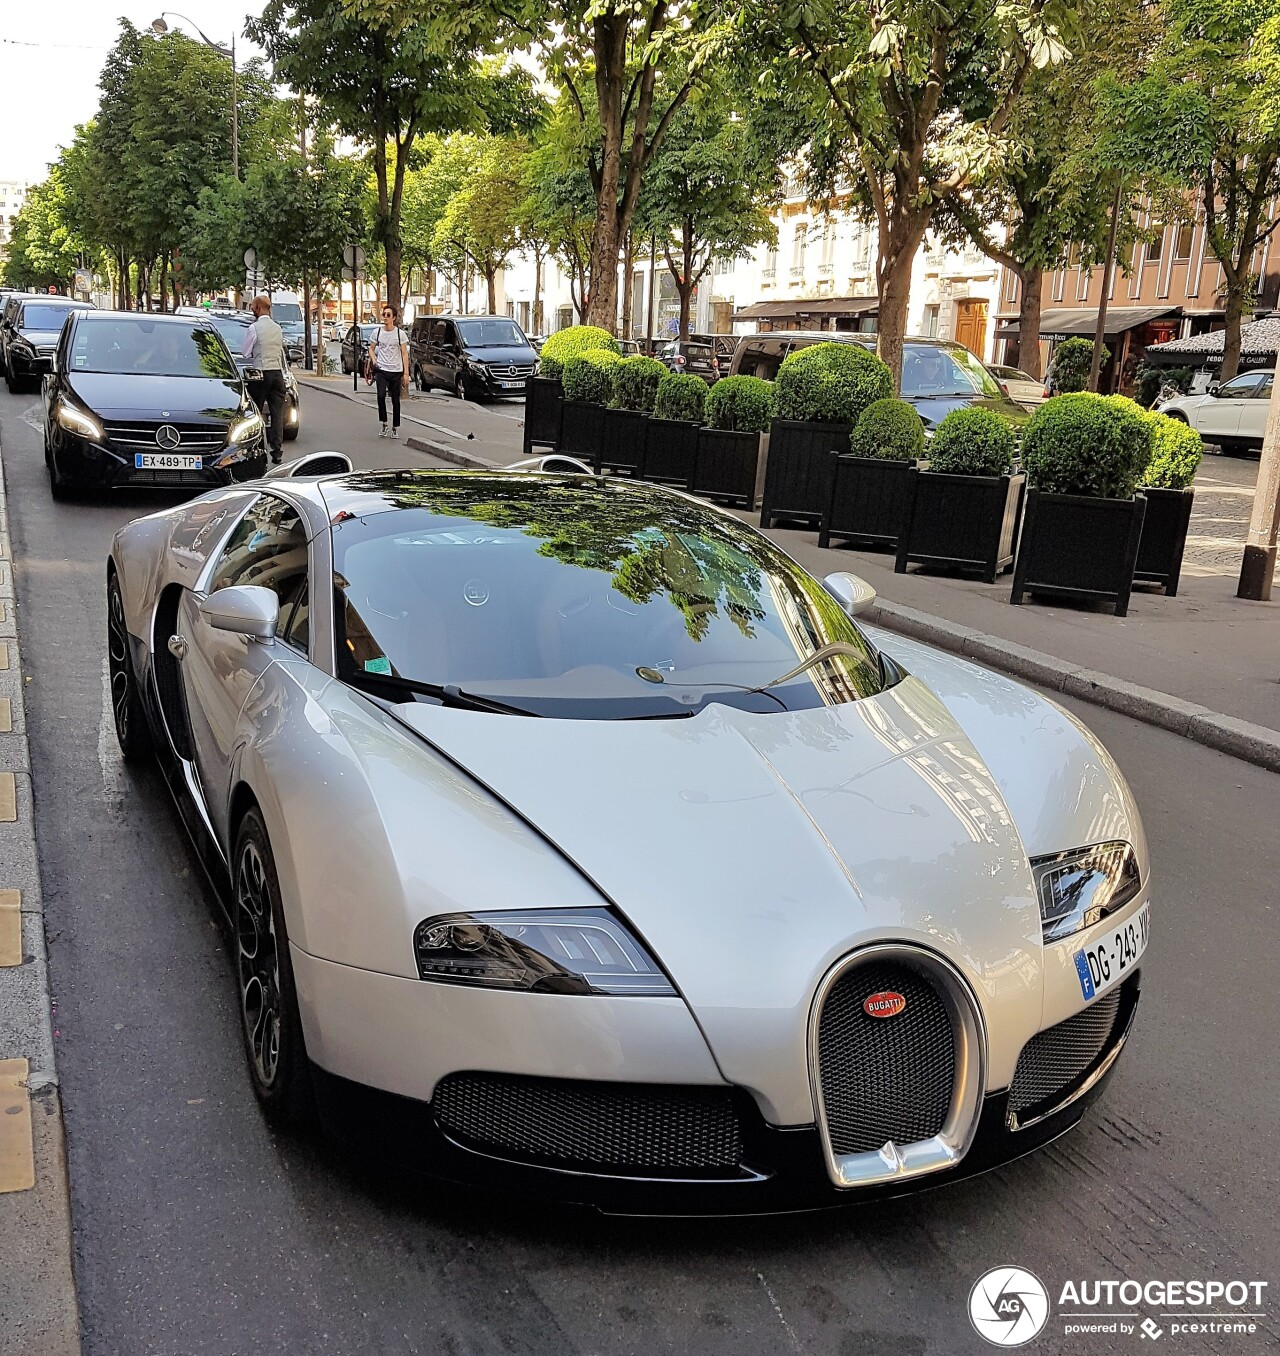 Bugatti Veyron Grand Sport 16 4 Open Top: Bugatti Veyron 16.4 Grand Sport